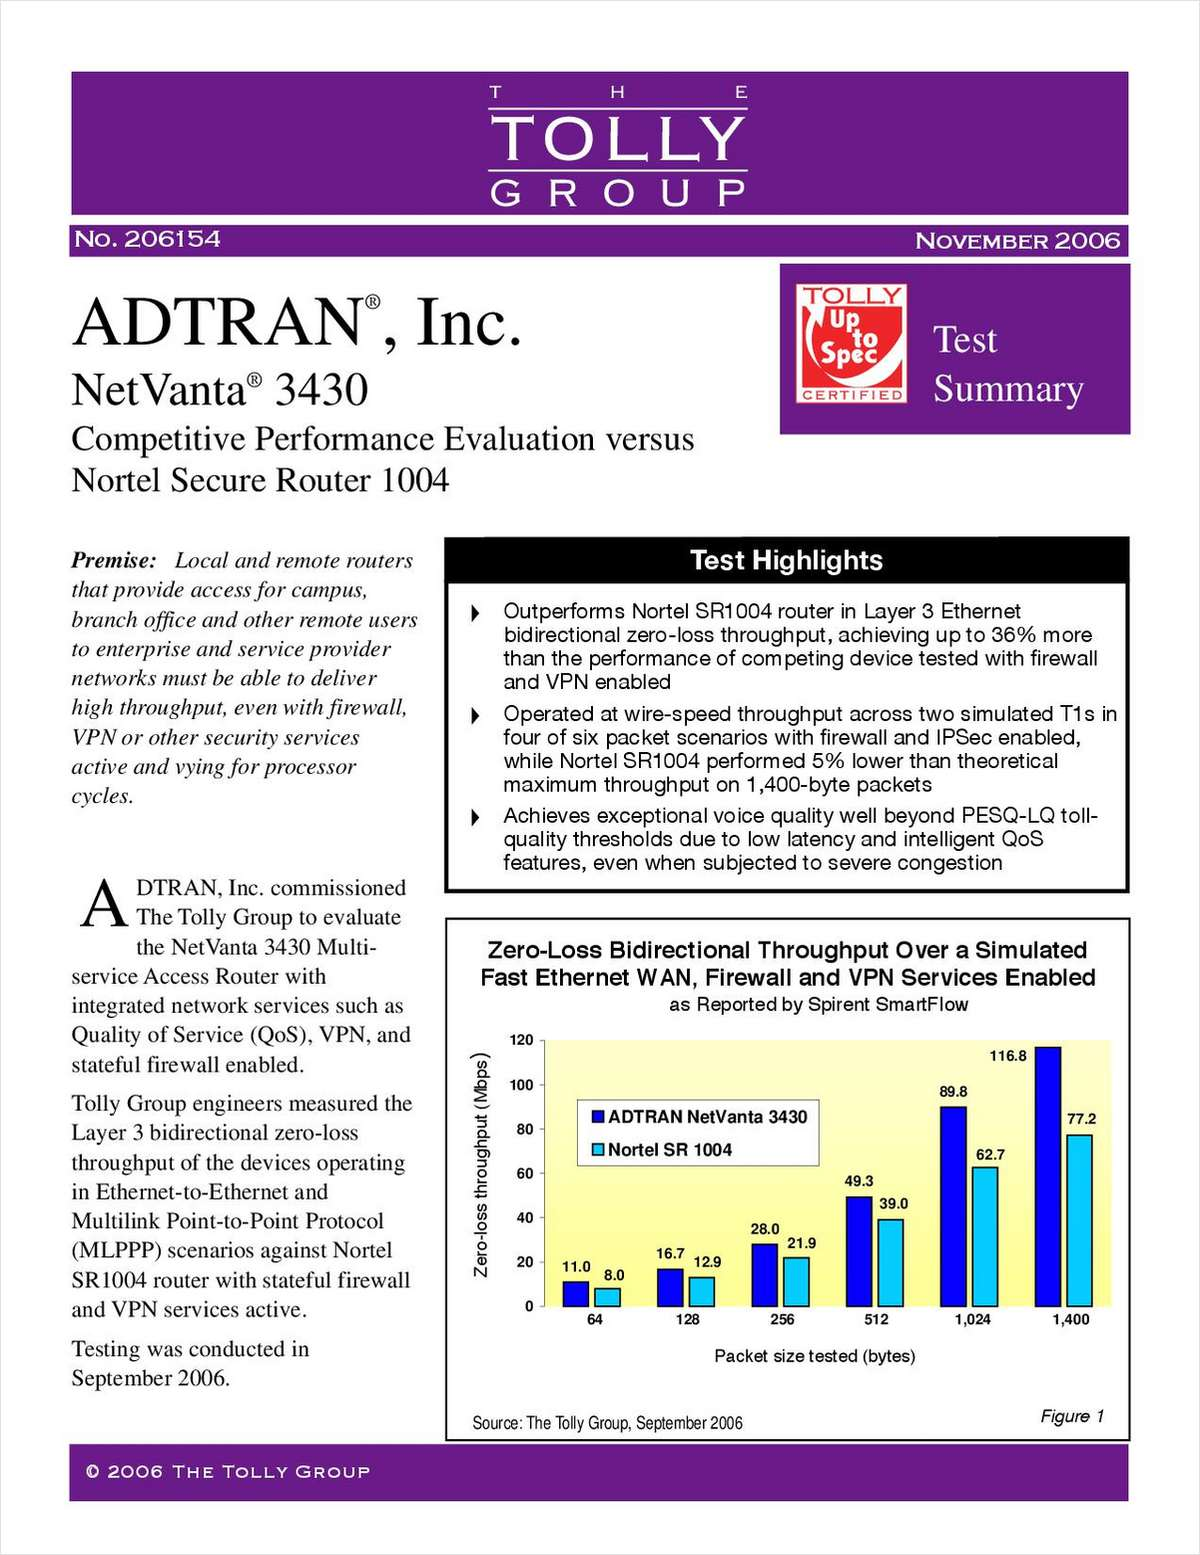 Facts on Multiservice Access Router Performance - ADTRAN Outperforms Nortel in Tolly Group Tests